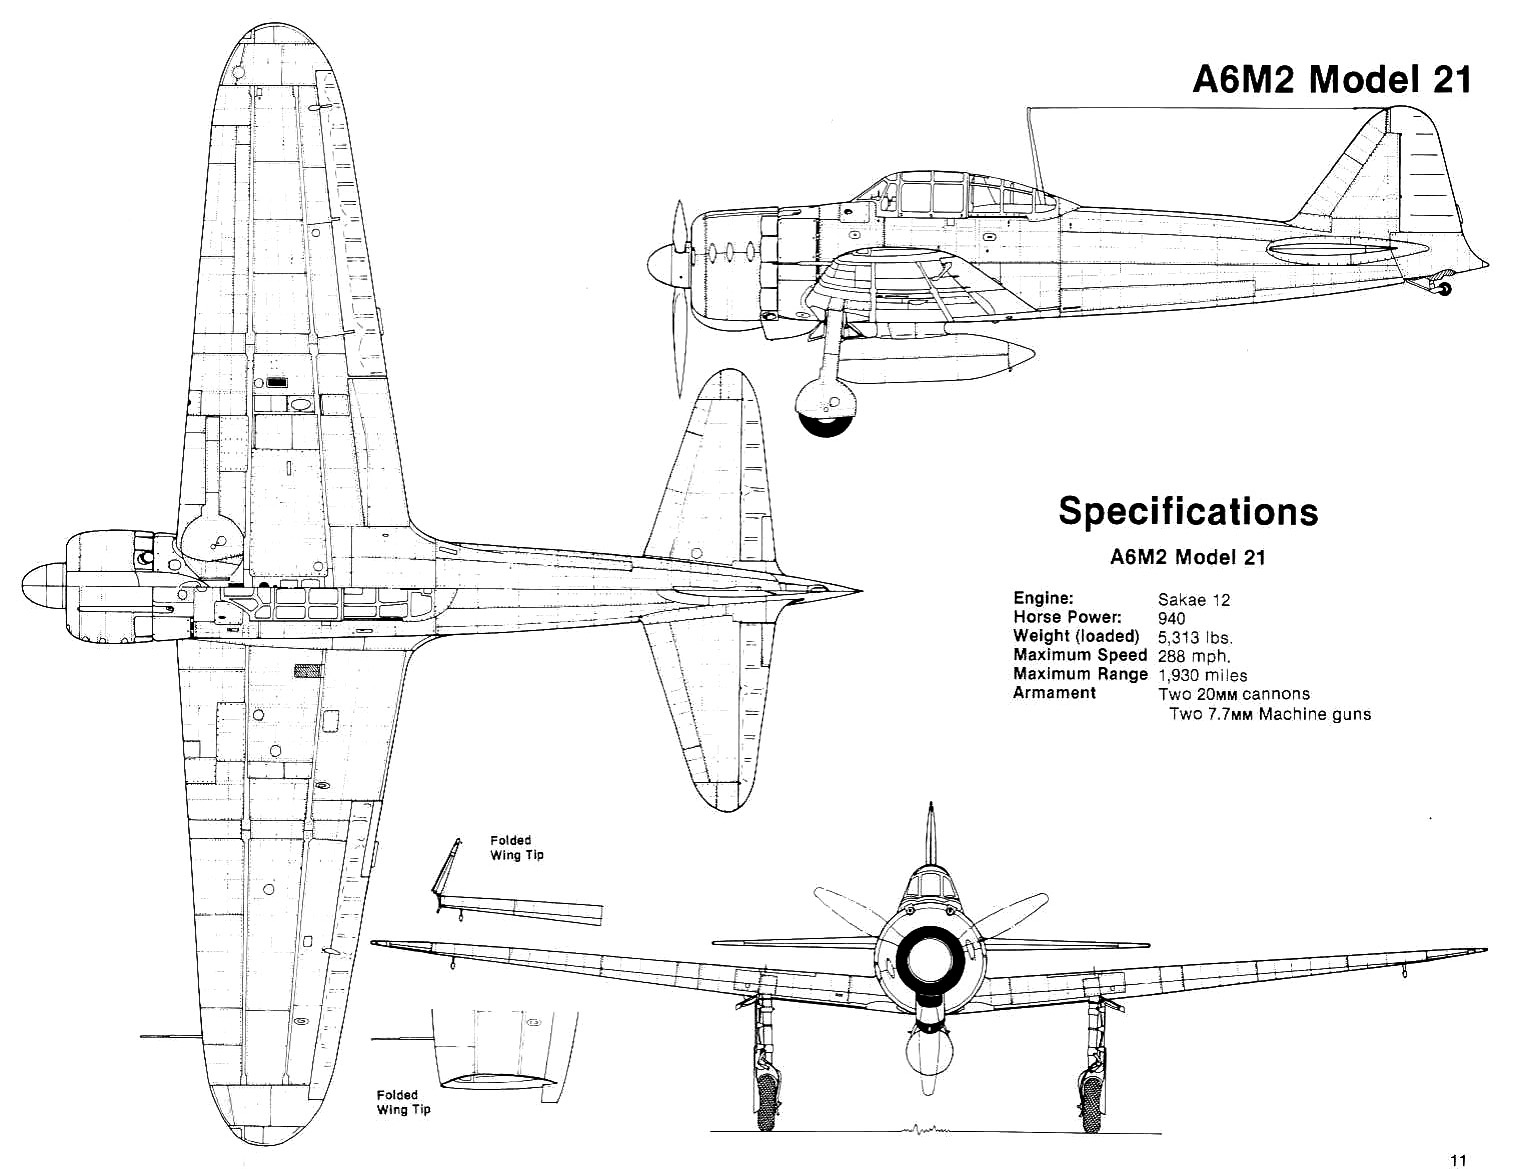 The Mitsubishi A6M Zero was a long-extend warrior flying machine managed by the Imperial Japanese Navy Air Service from 1940 to 1945. The A6M was designated as the Mitsubishi Navy […]